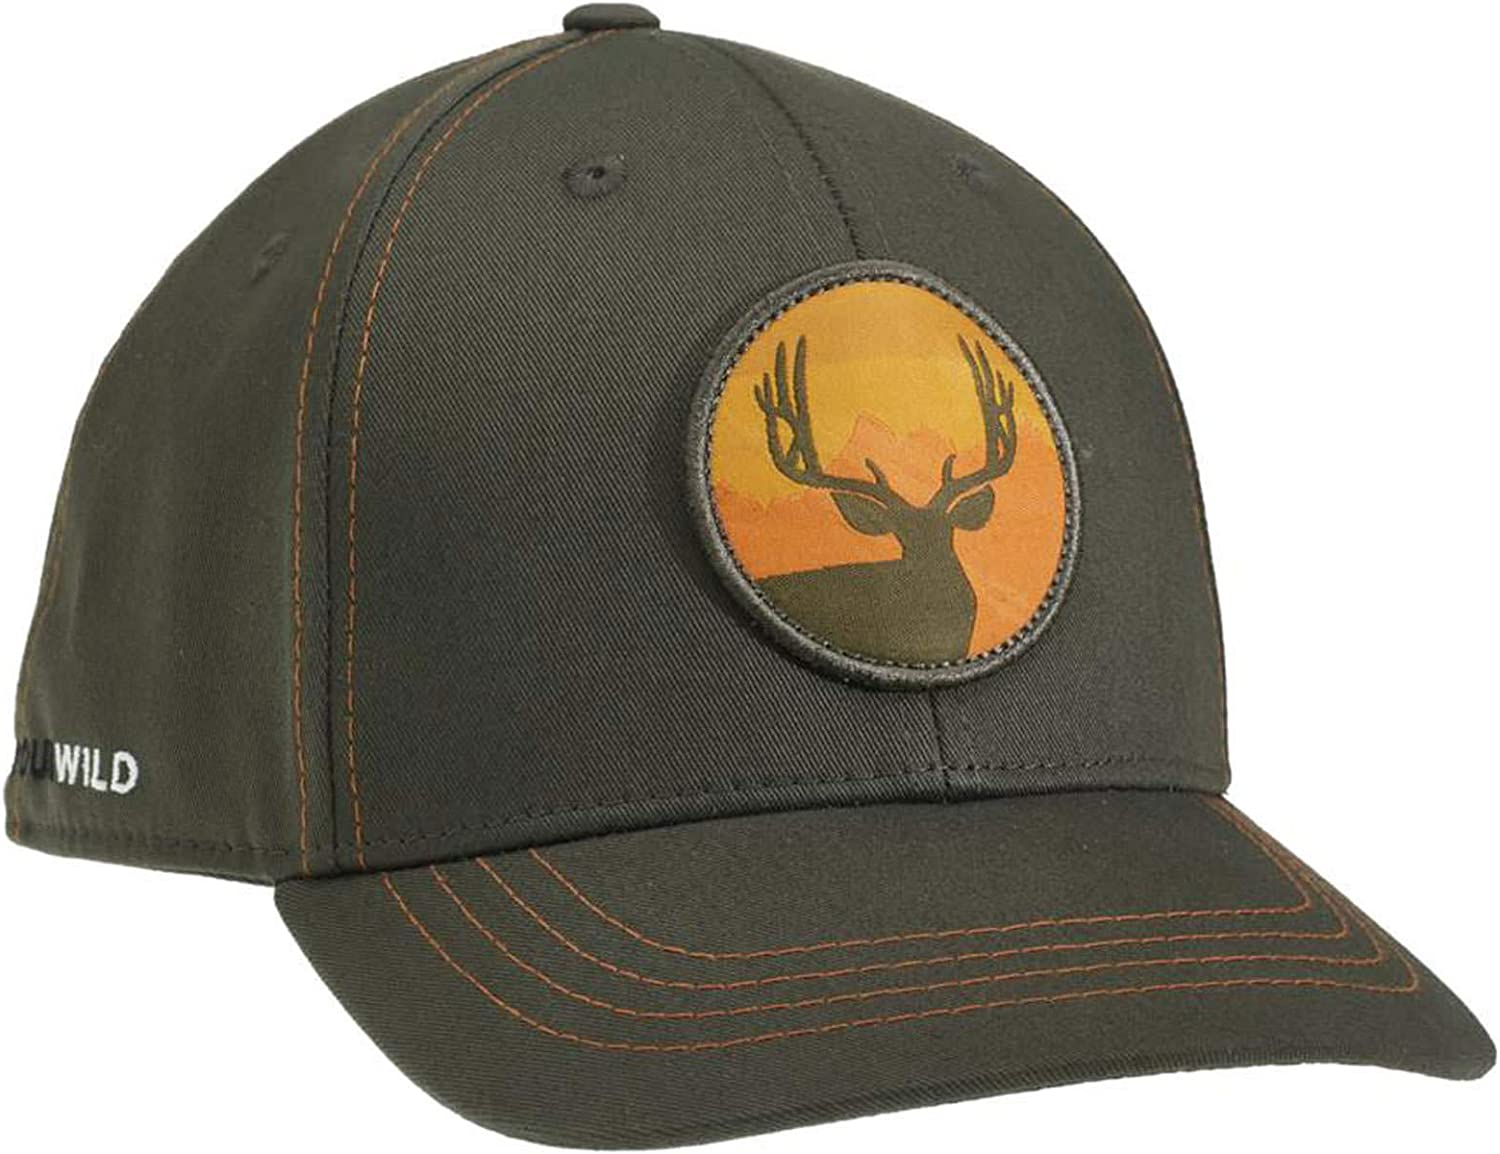 Rep Your Water Muley Country Full Cloth Hat